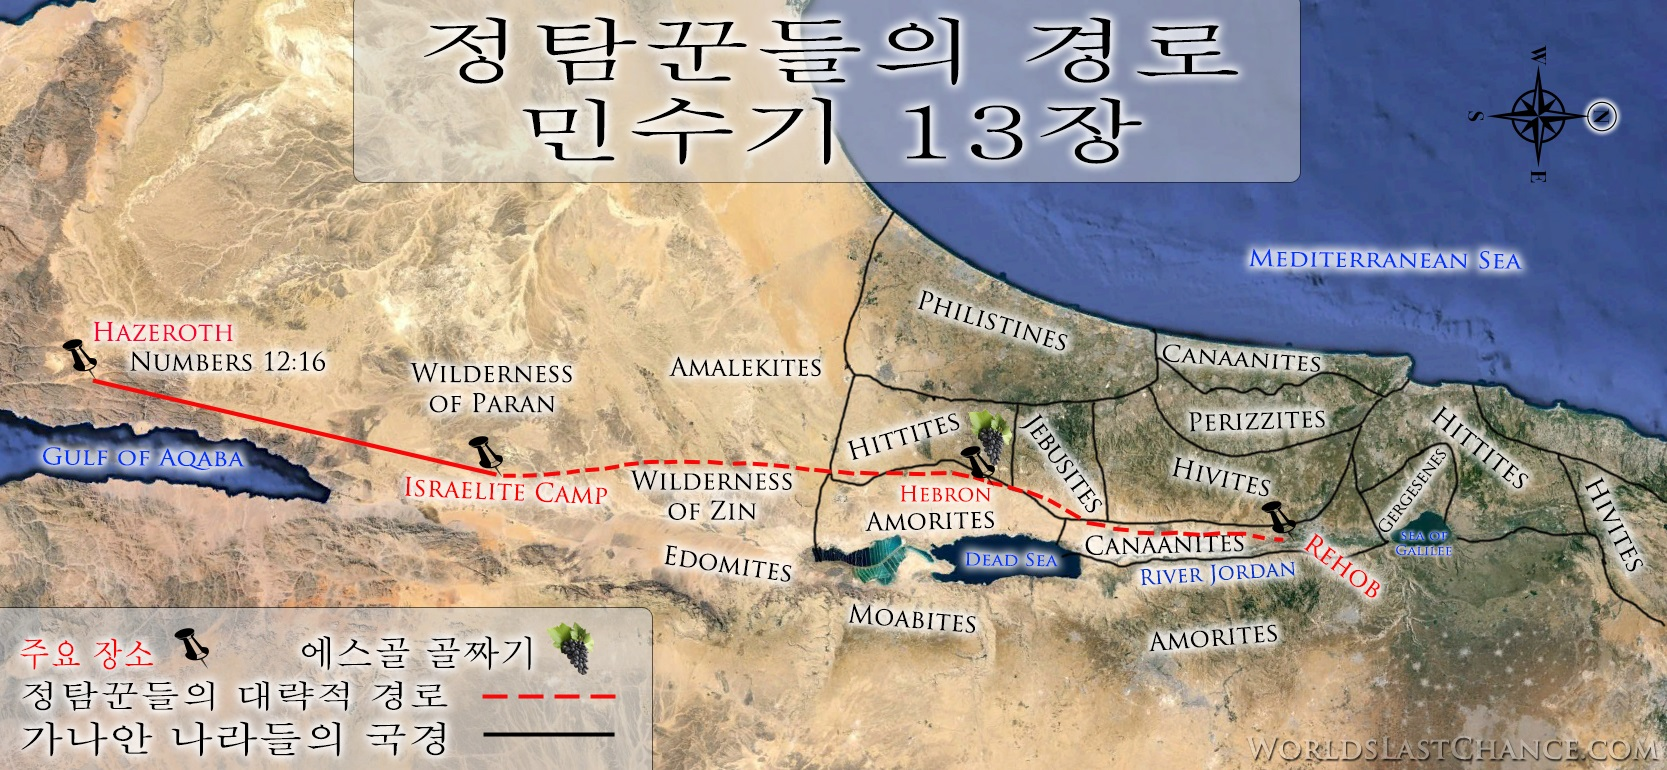 Path of the spies when investigating Canaan (land of the Nephilim) in Numbers 13